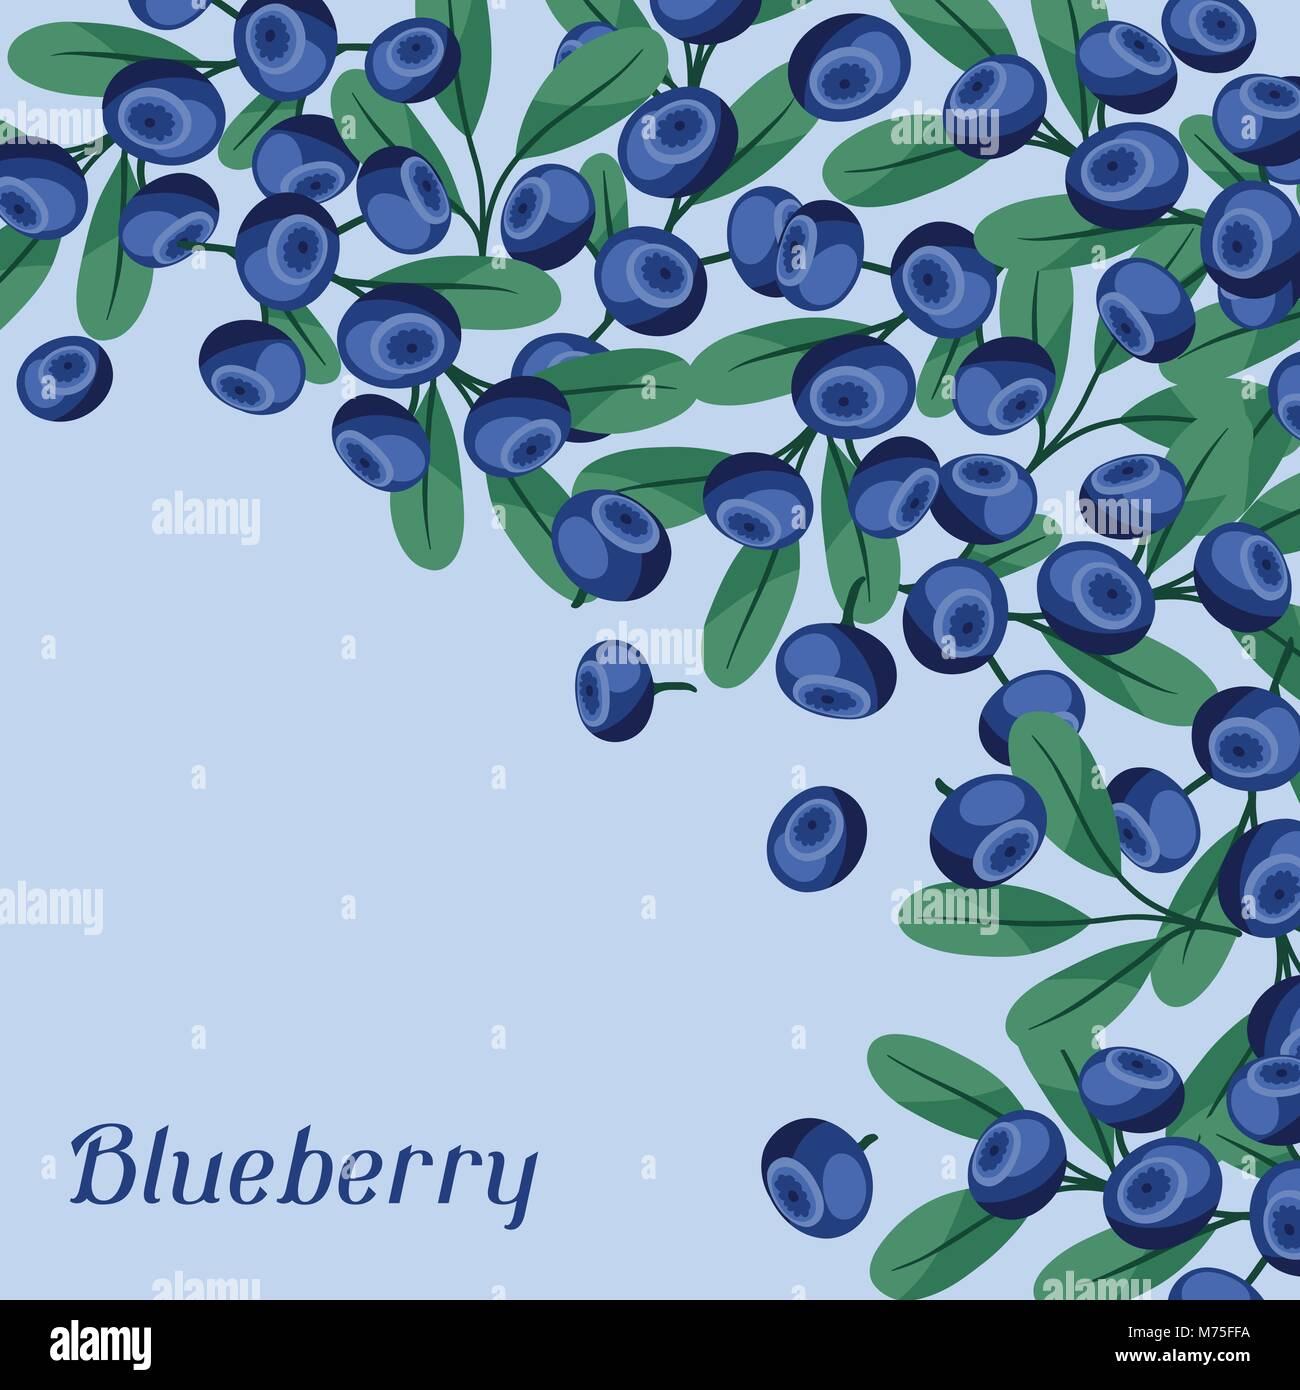 Nature background design with blueberries. - Stock Vector